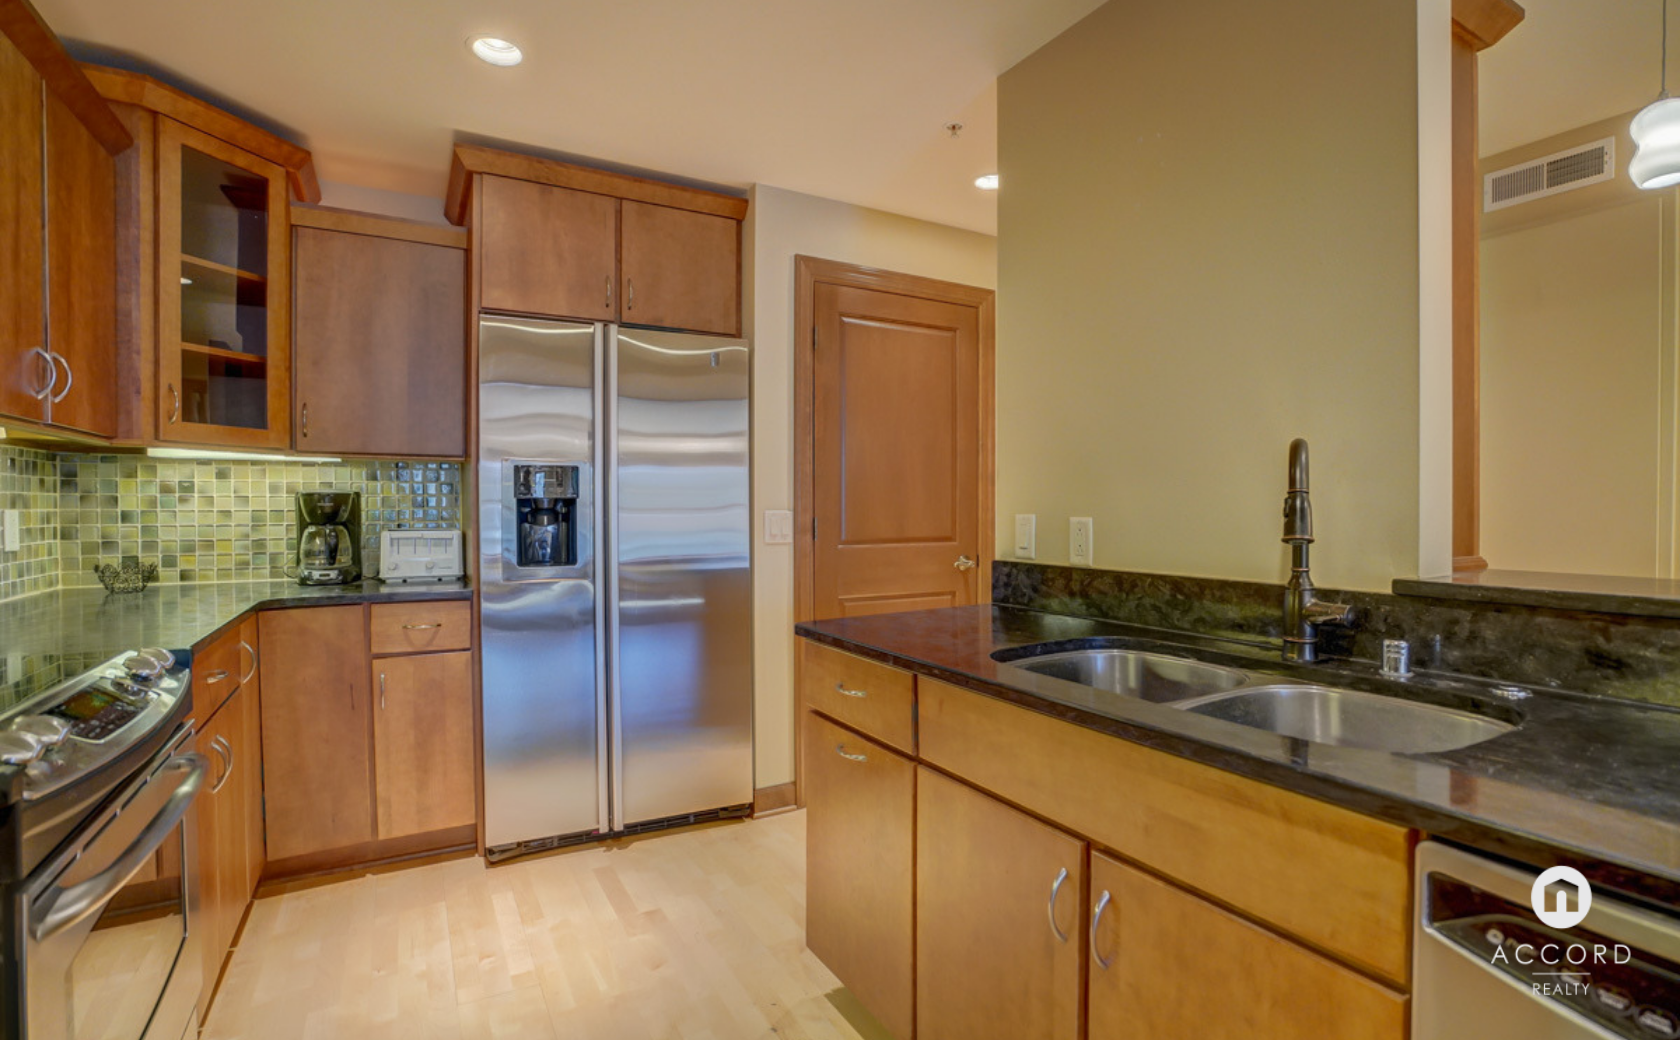 123 W Washington Ave #303 Madison, WI 53703 - Kitchen3.png